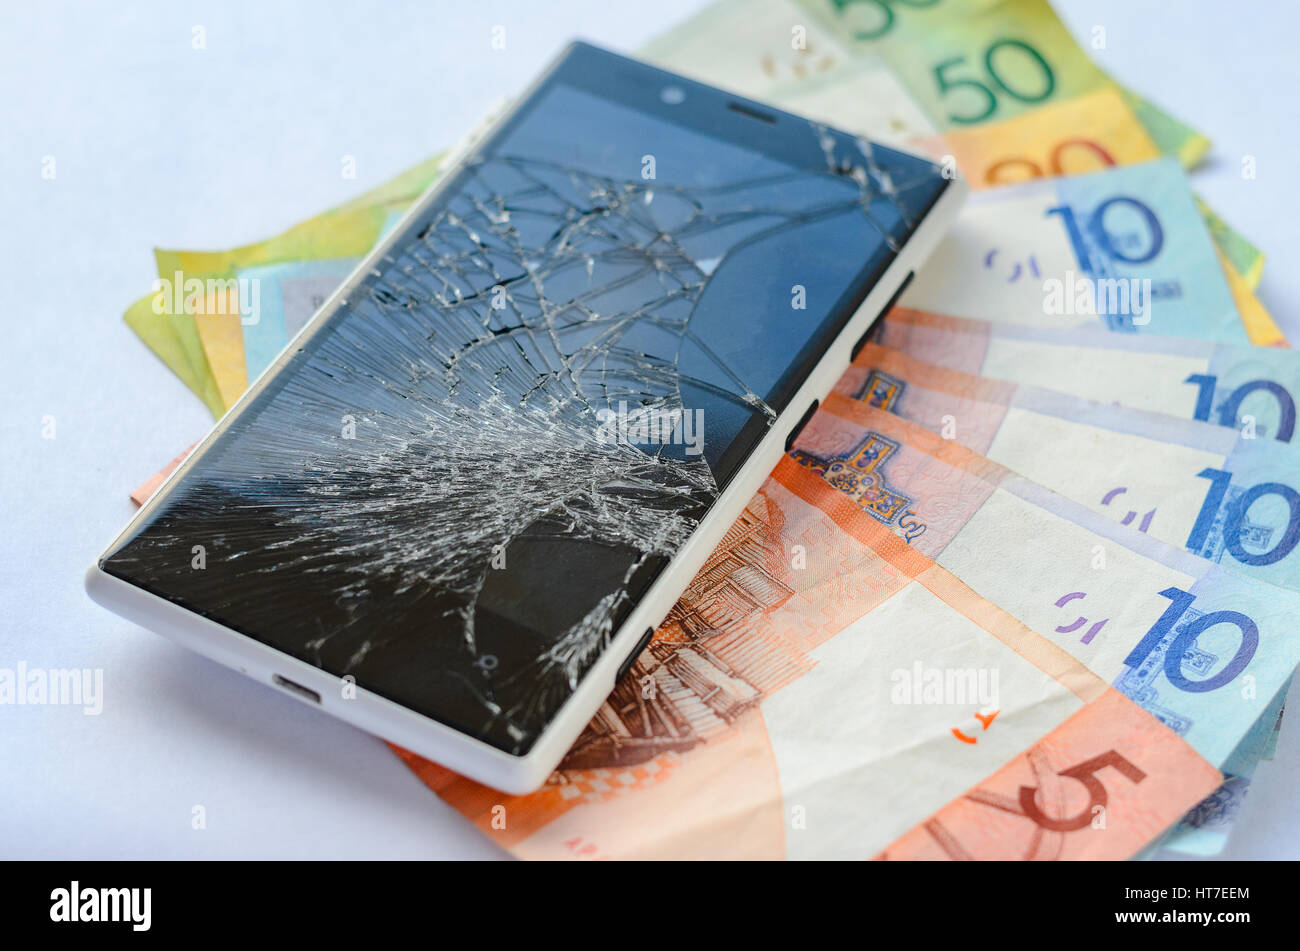 Broken smartphone lying on money banknotes on a White background. Losing money concept Stock Photo